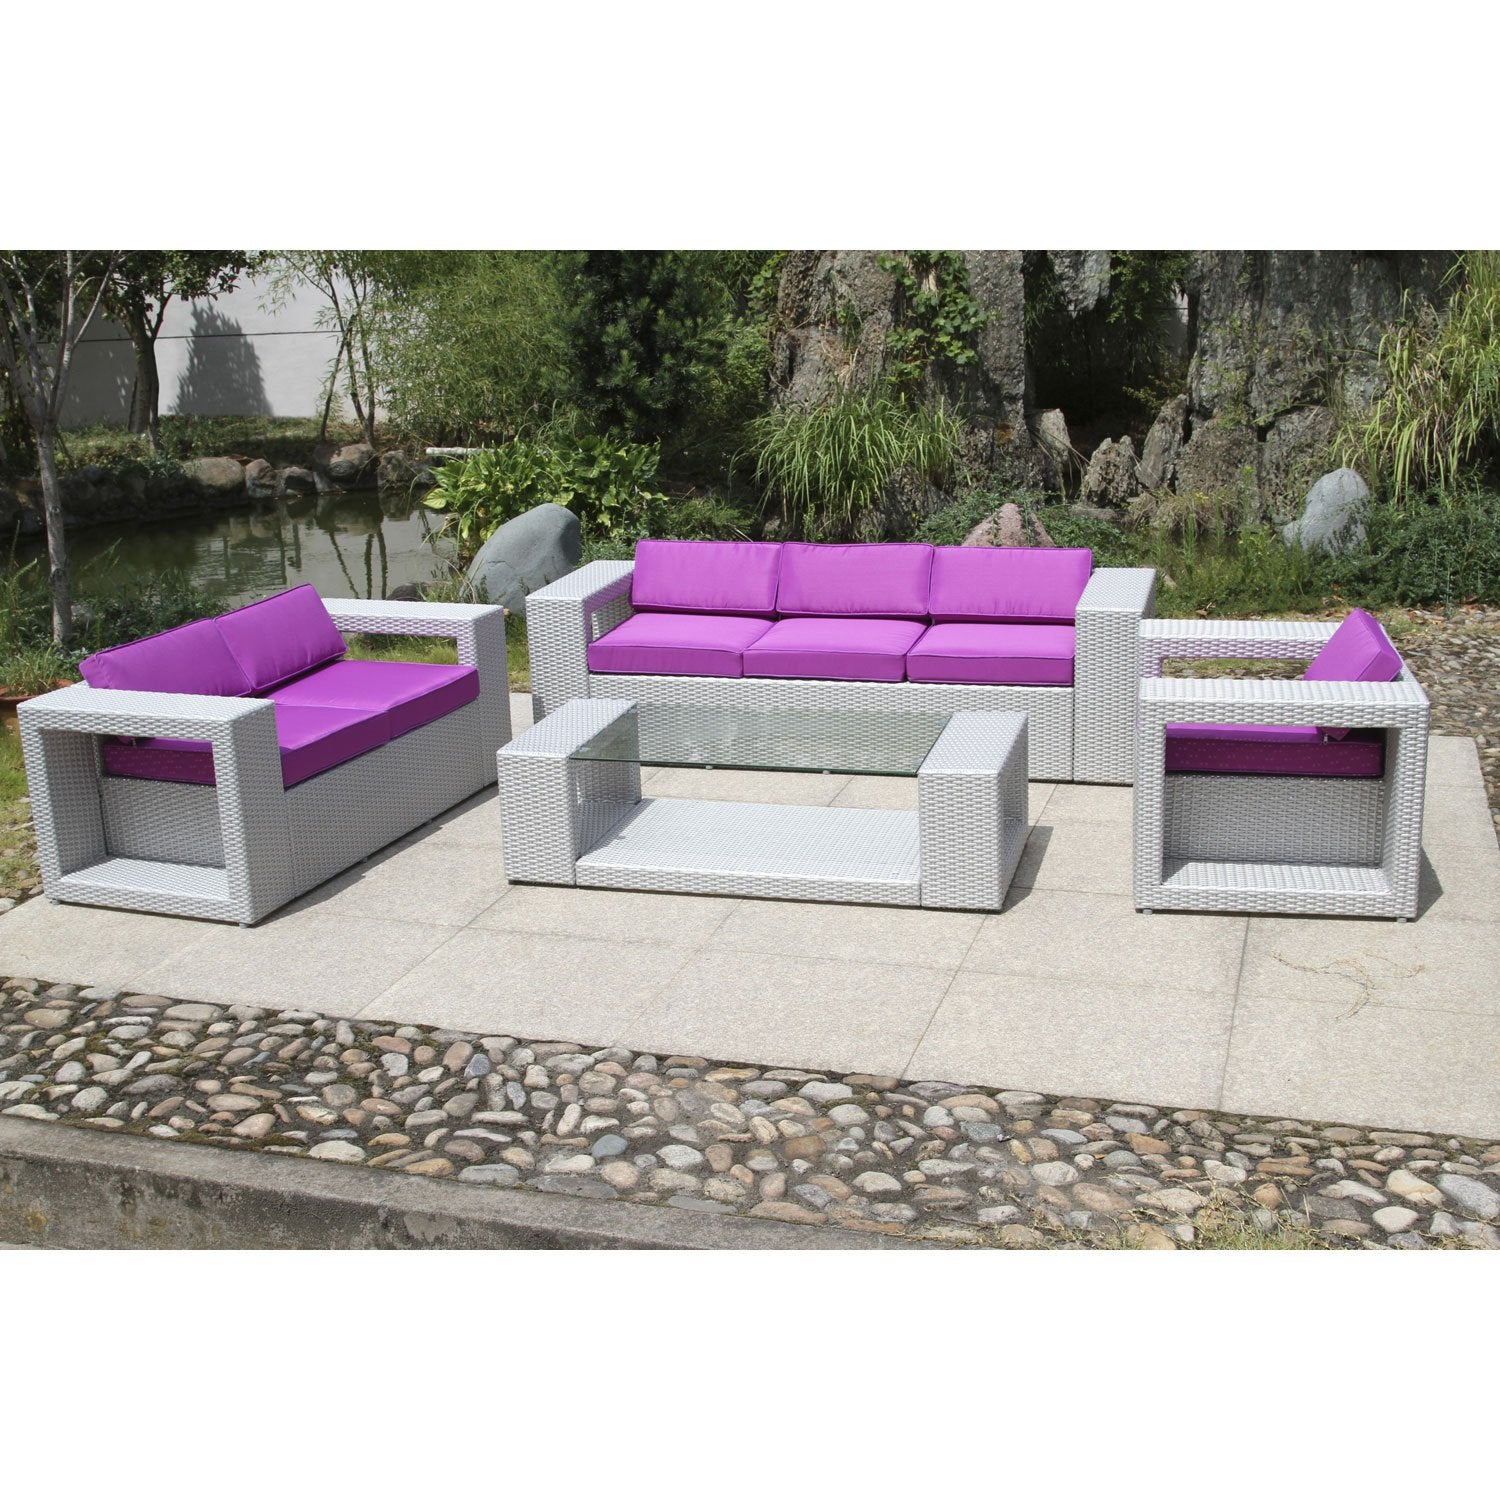 Salon de jardin mediterran e dcb garden leroy merlin for Mini salon de jardin